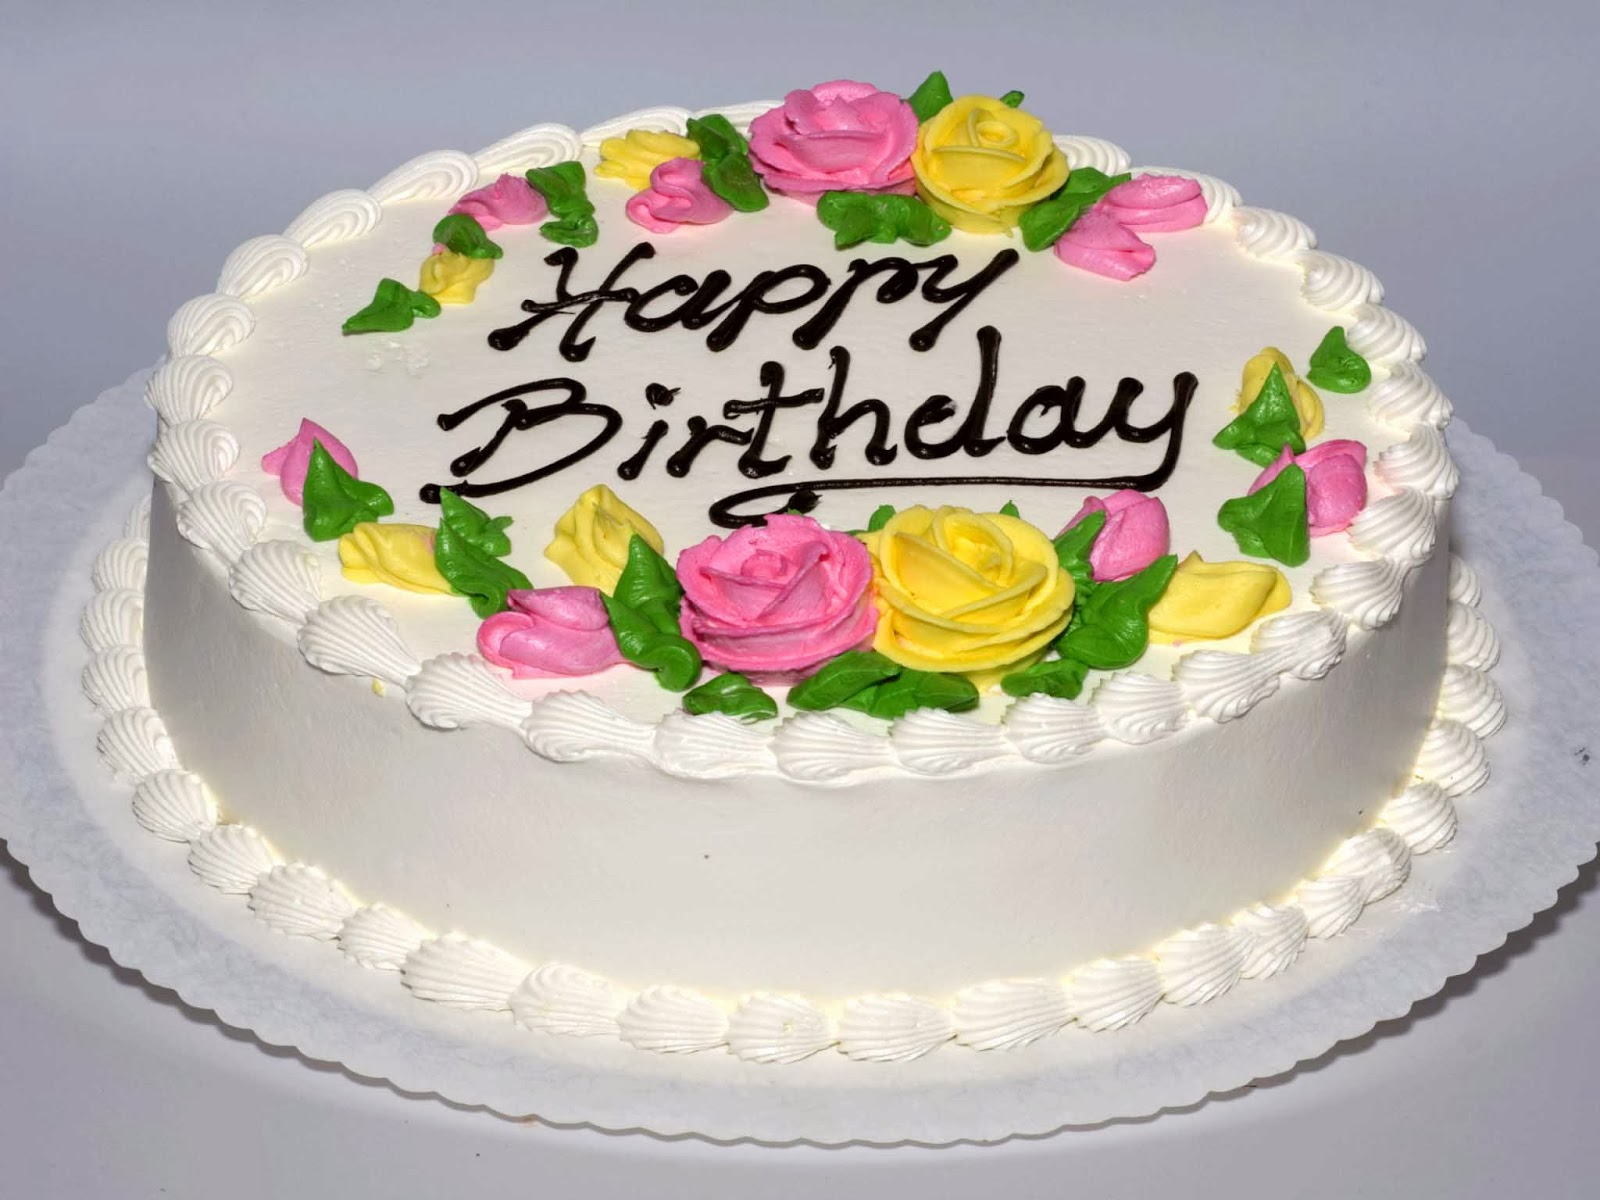 Latest Birthday Cake Hd Images : Lovable Images: Happy Birthday Greetings free download ...